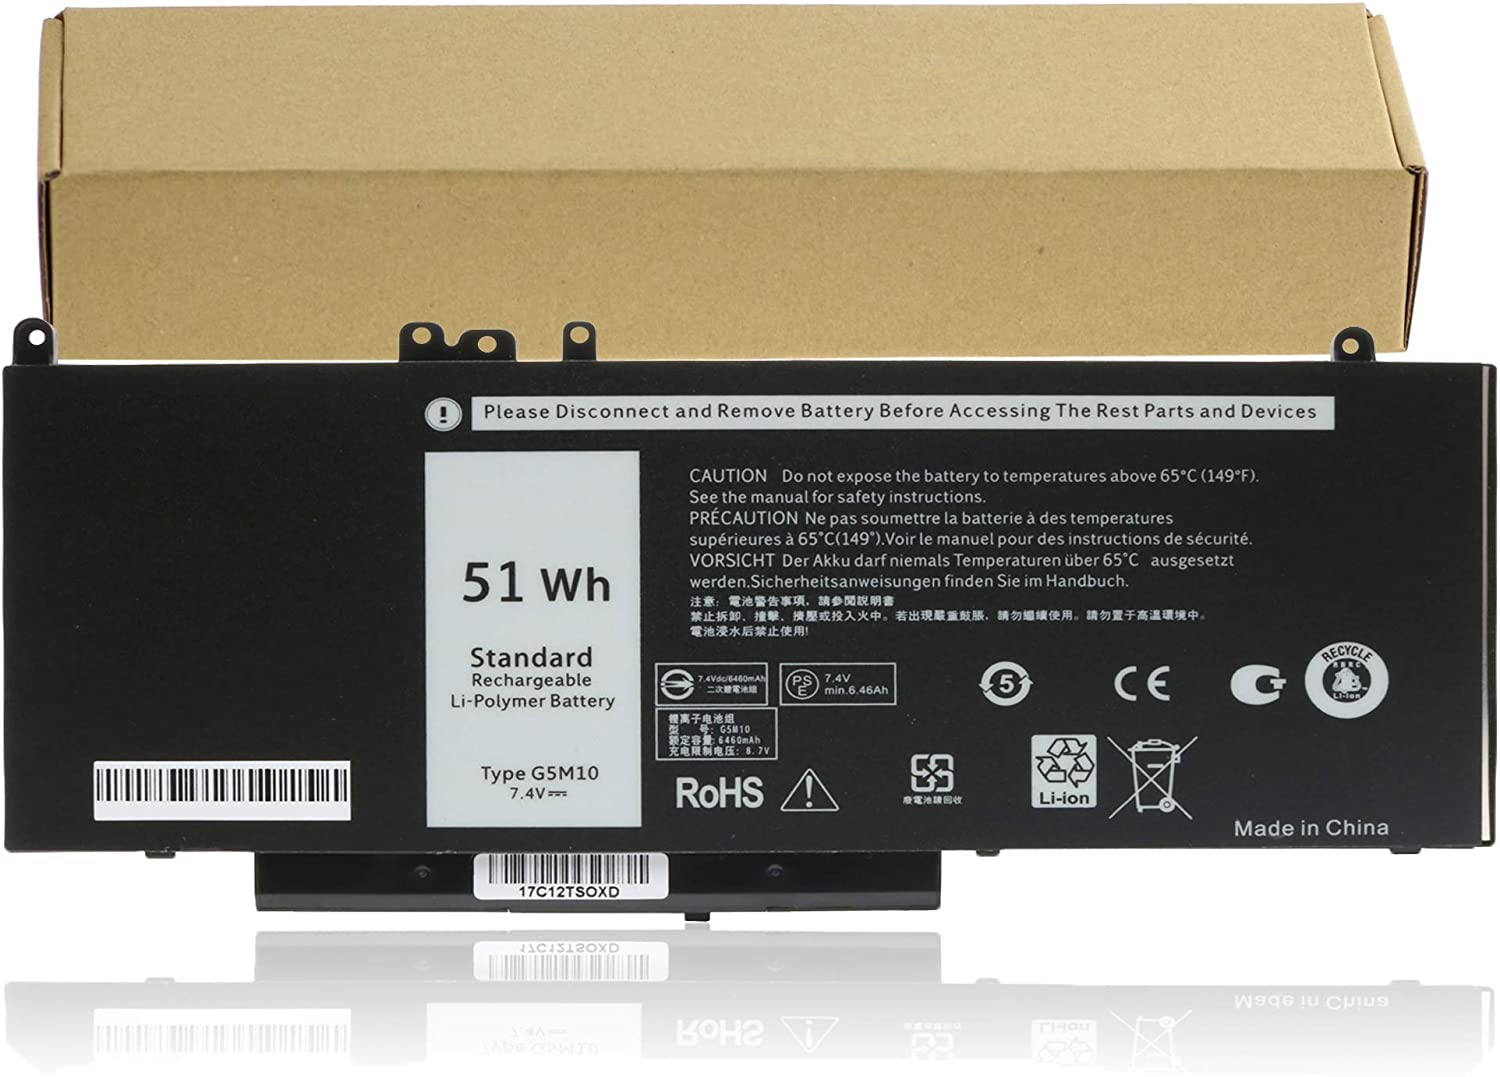 G5M10 Laptop Battery Replacement for DELL Latitude E5450 E5550 8V5GX R9XM9 WYJC2 1KY05 G5M10 Notebook Batteries -7.4V 51WH